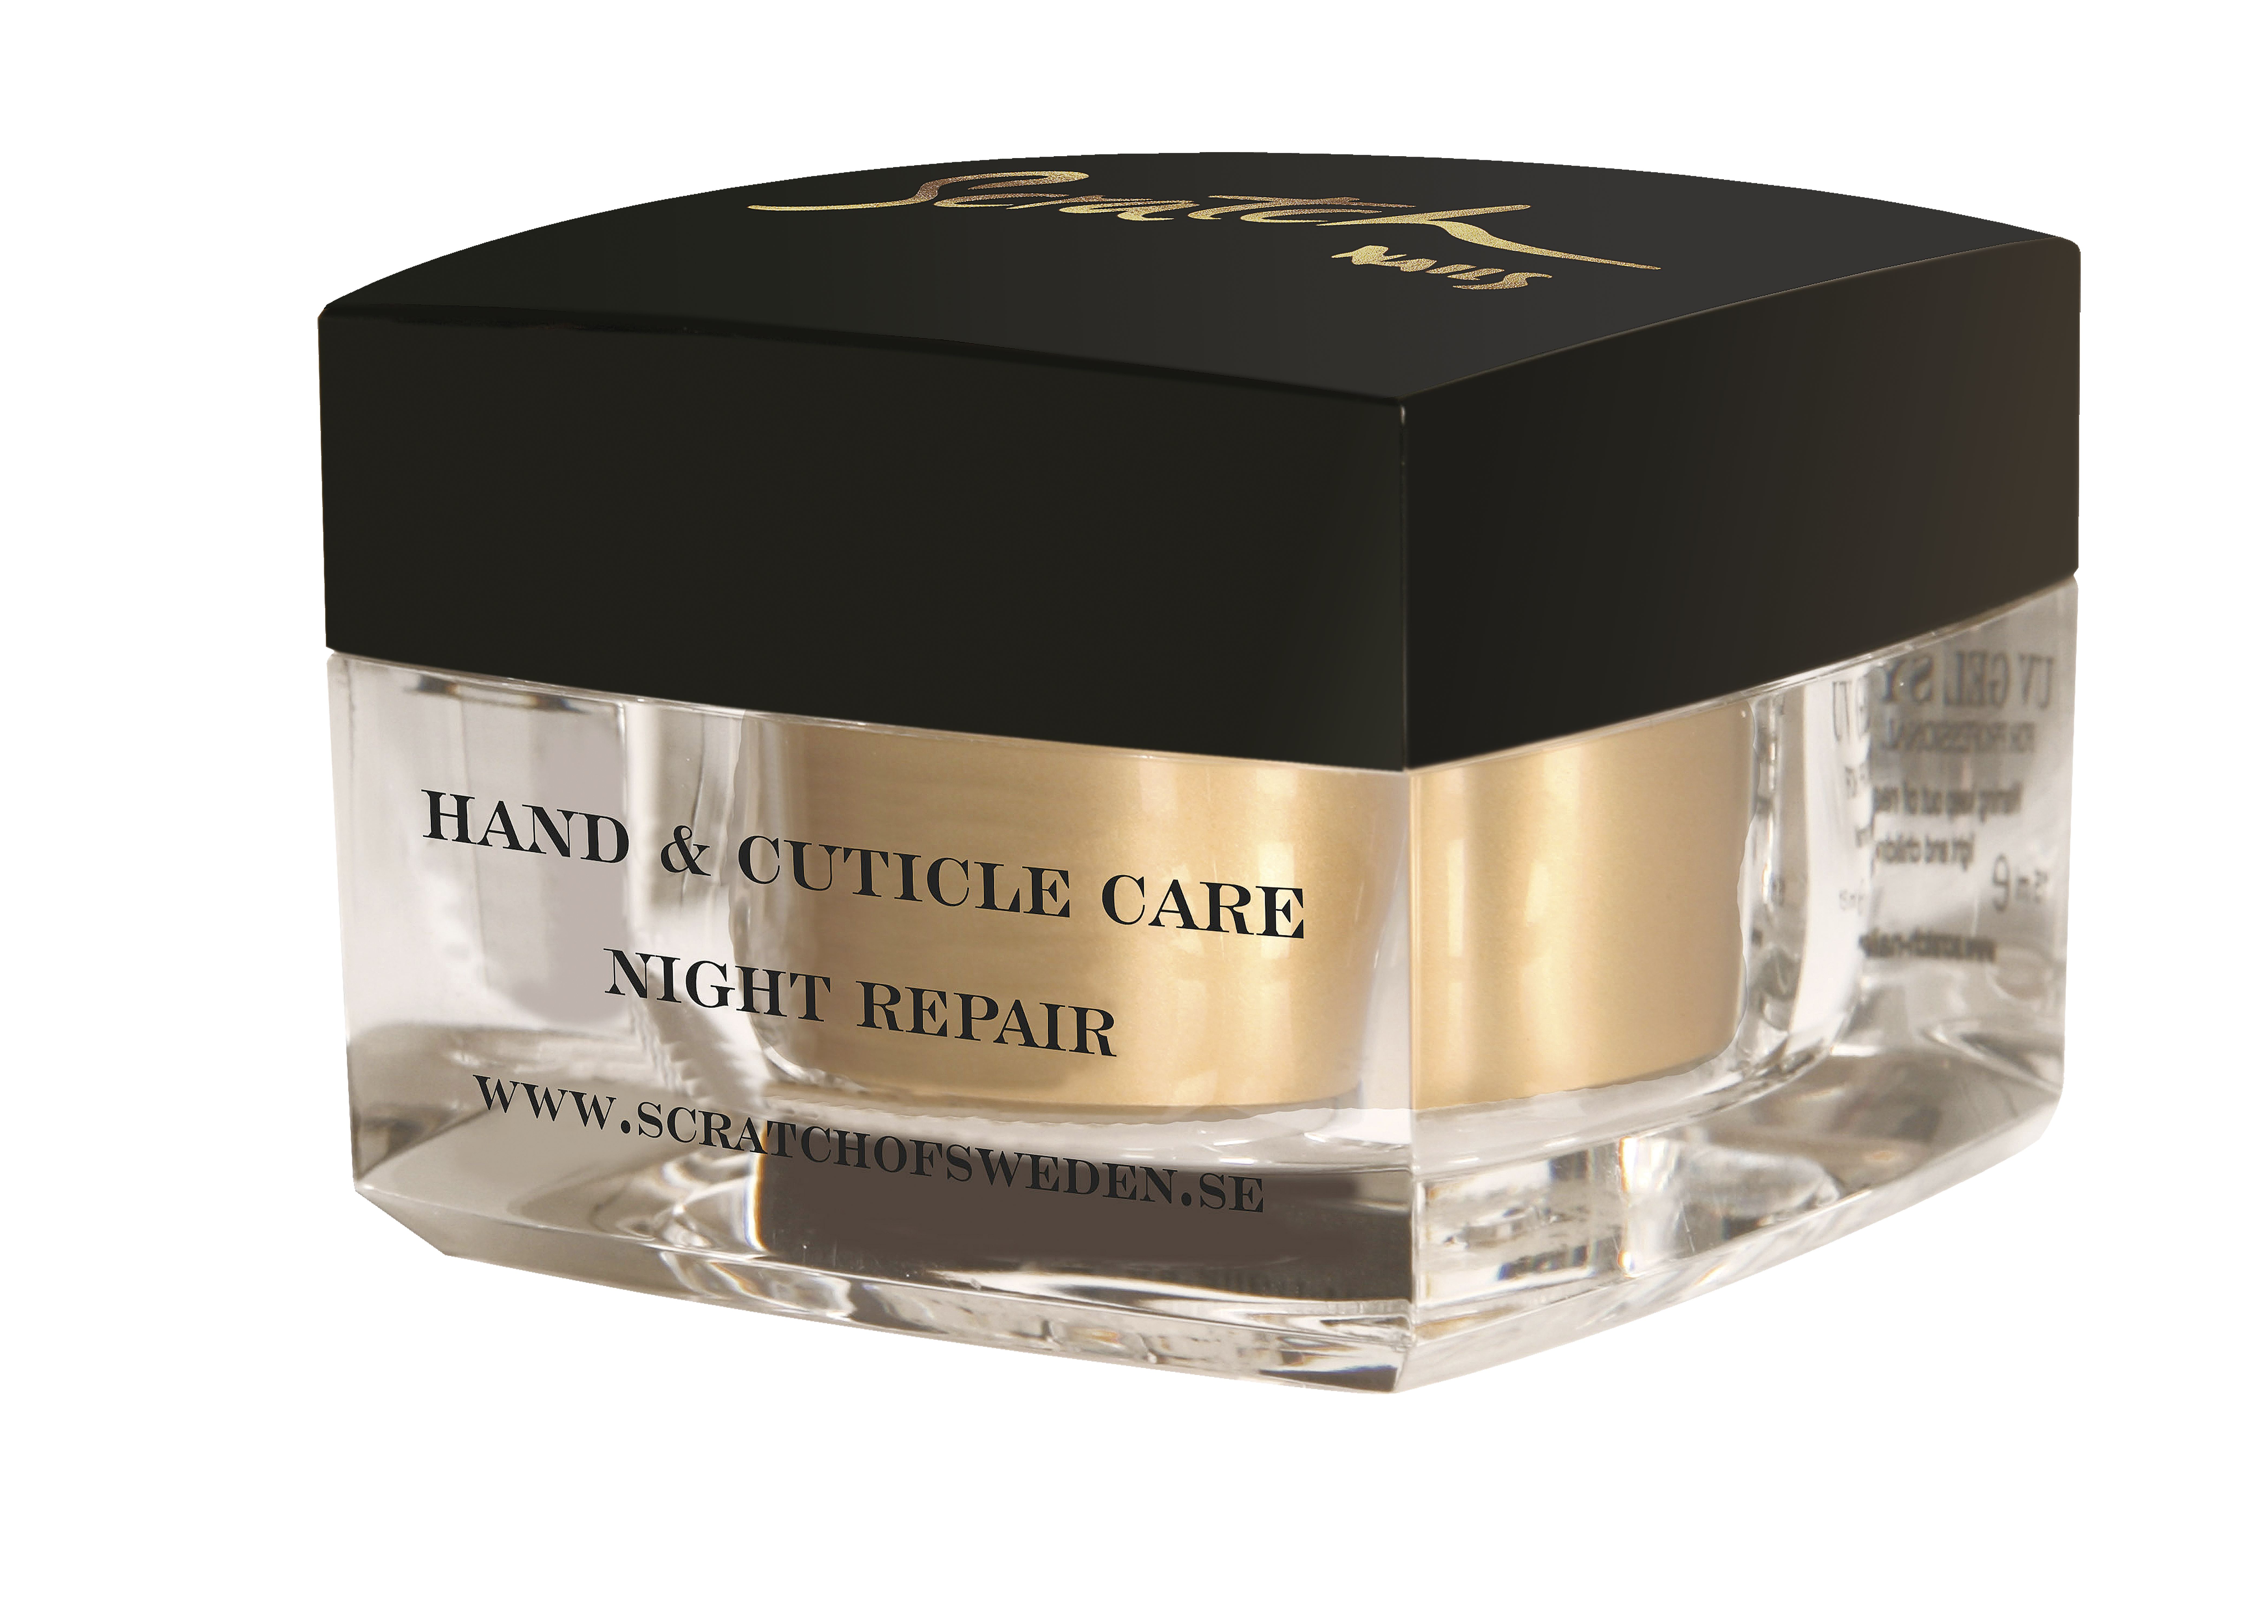 Hand & Cuticle Care Night Repair